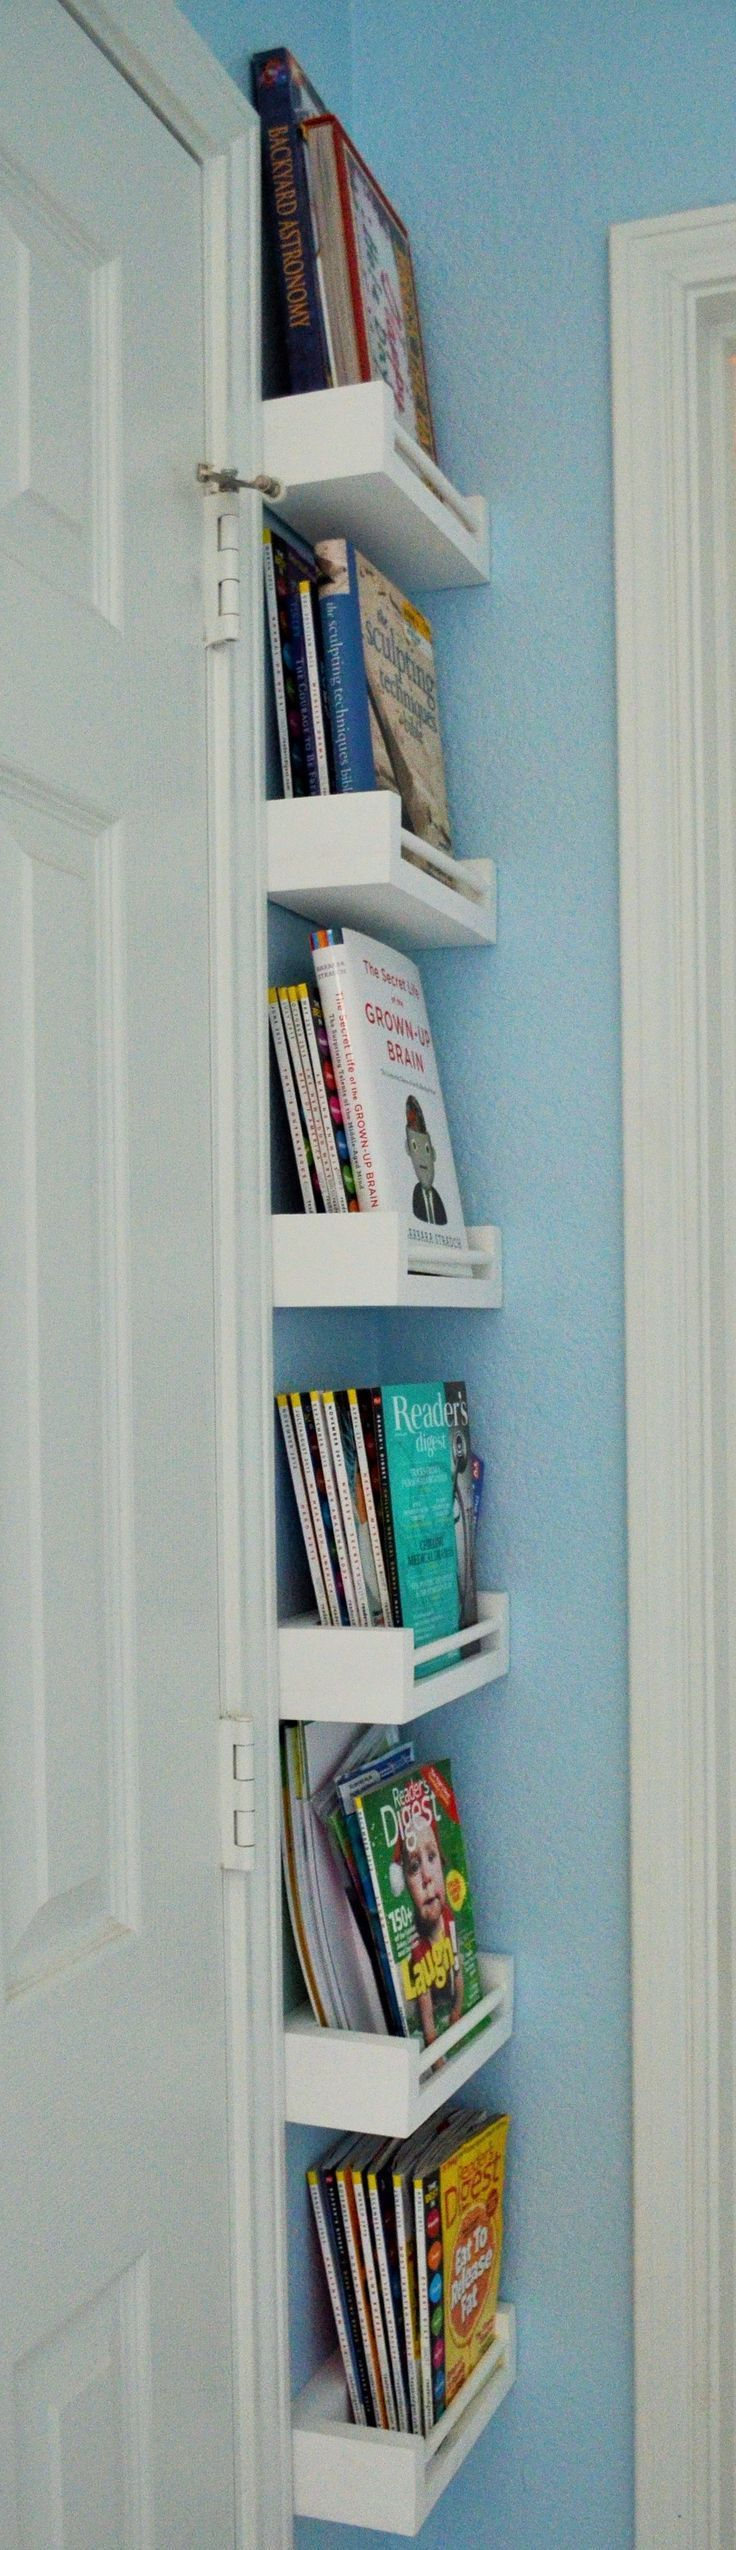 Small Corner Bookshelves. Work great for behind door in kids room. Can be used for books or small toys.